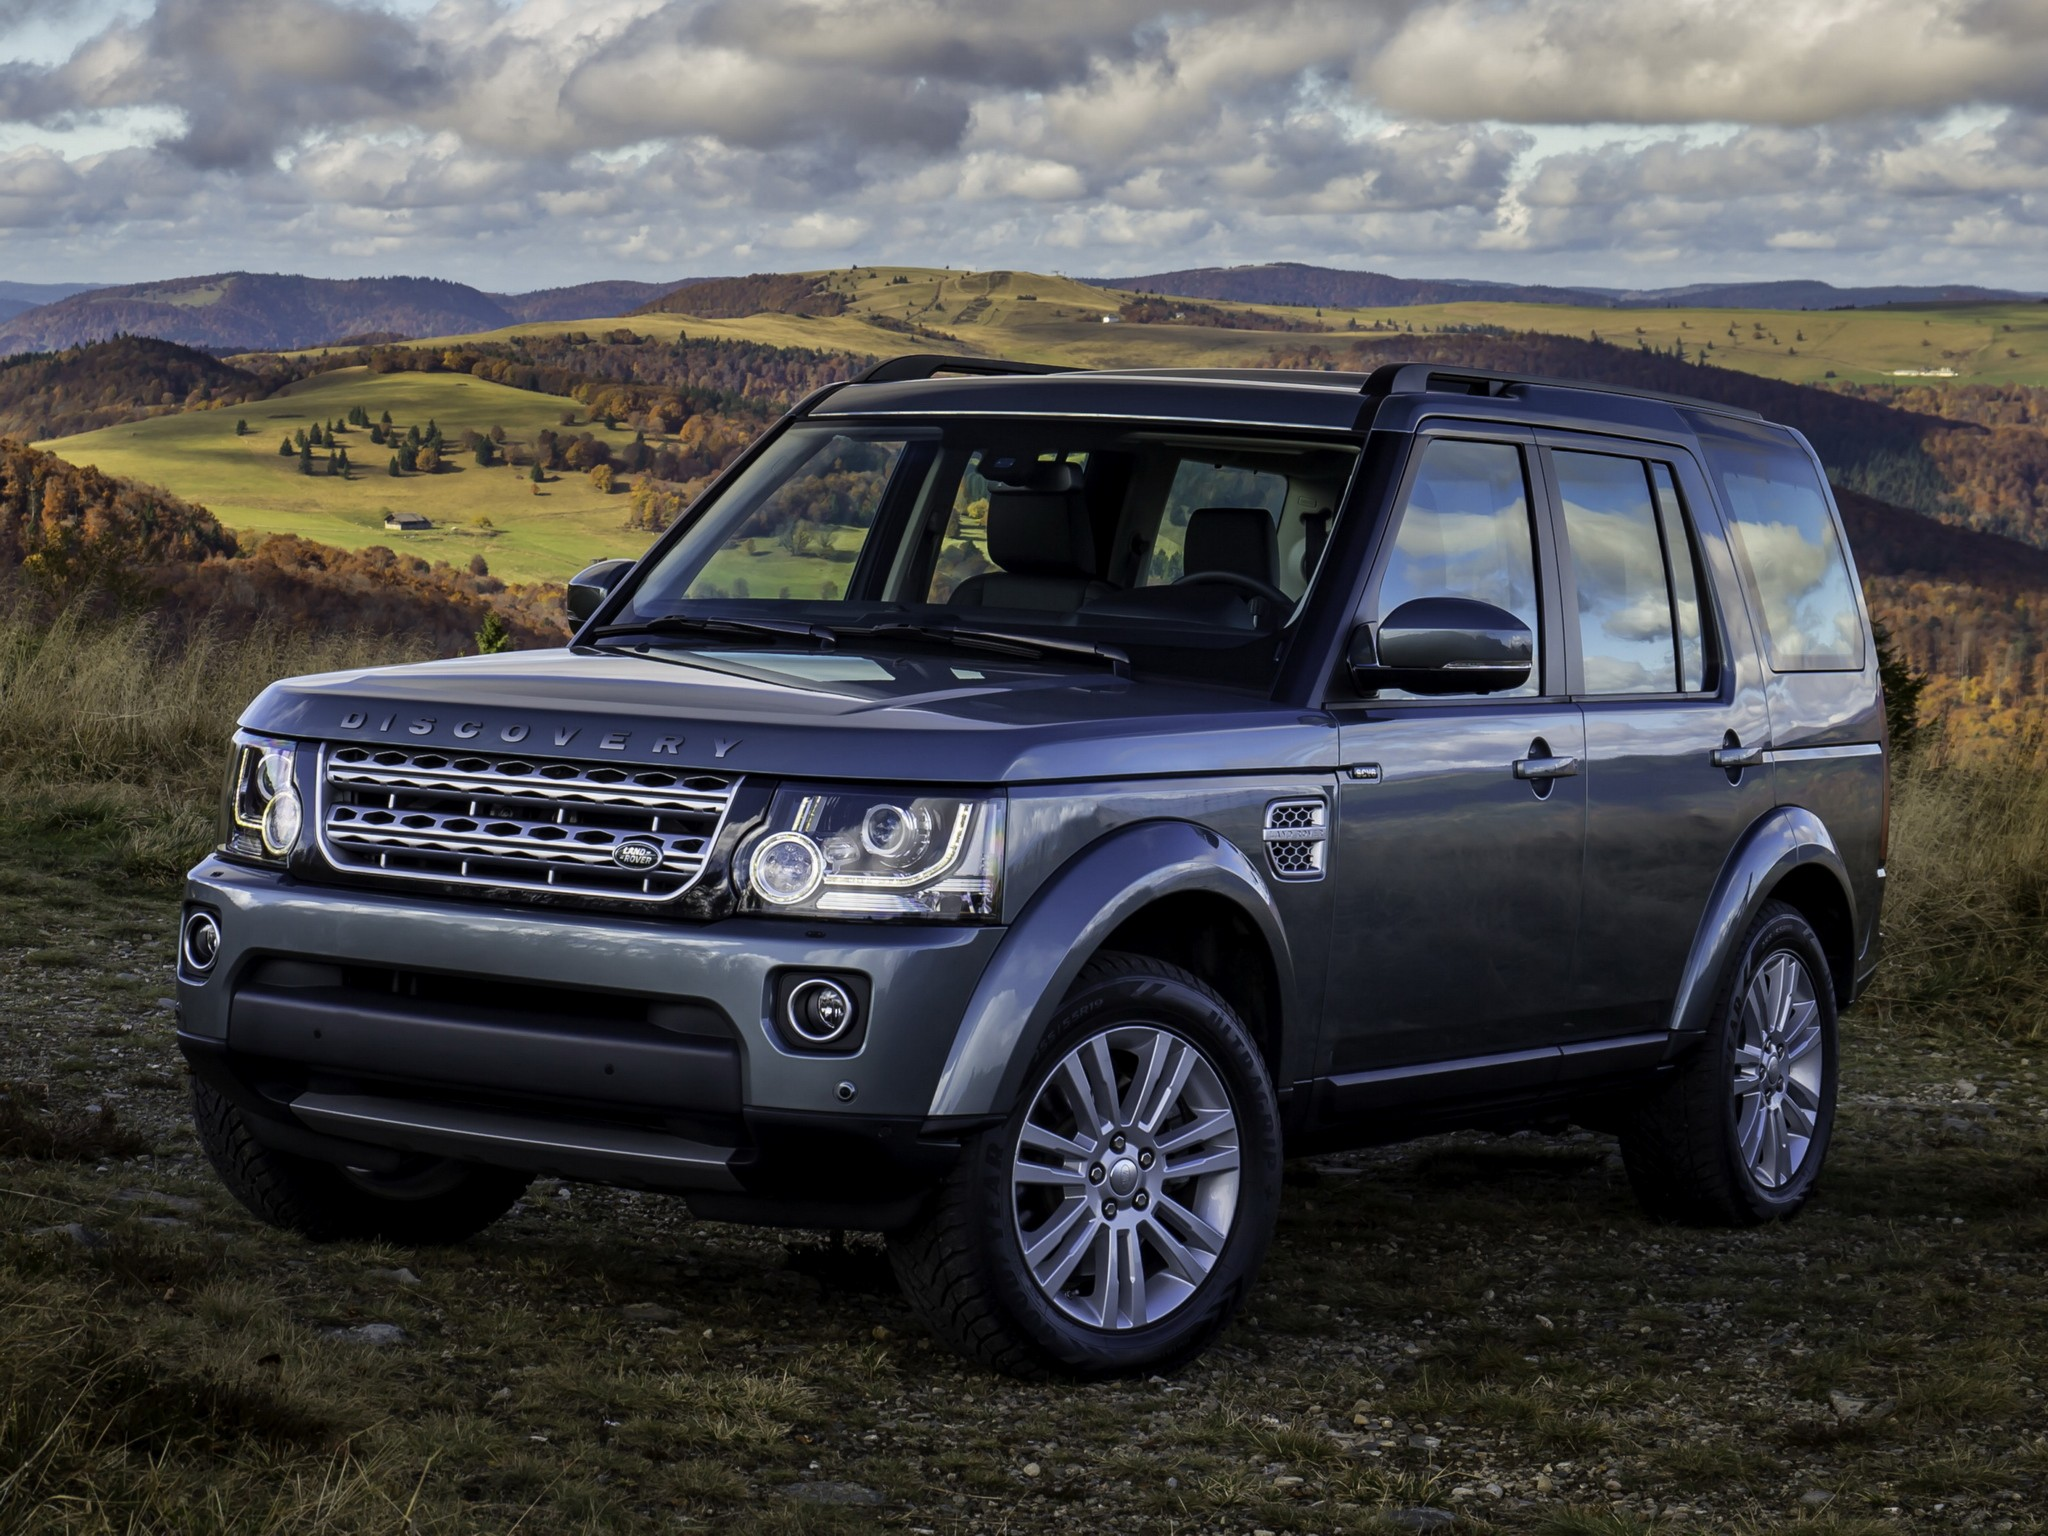 land rover discovery lr4 specs 2013 2014 2015 2016 2017 2018 autoevolution. Black Bedroom Furniture Sets. Home Design Ideas